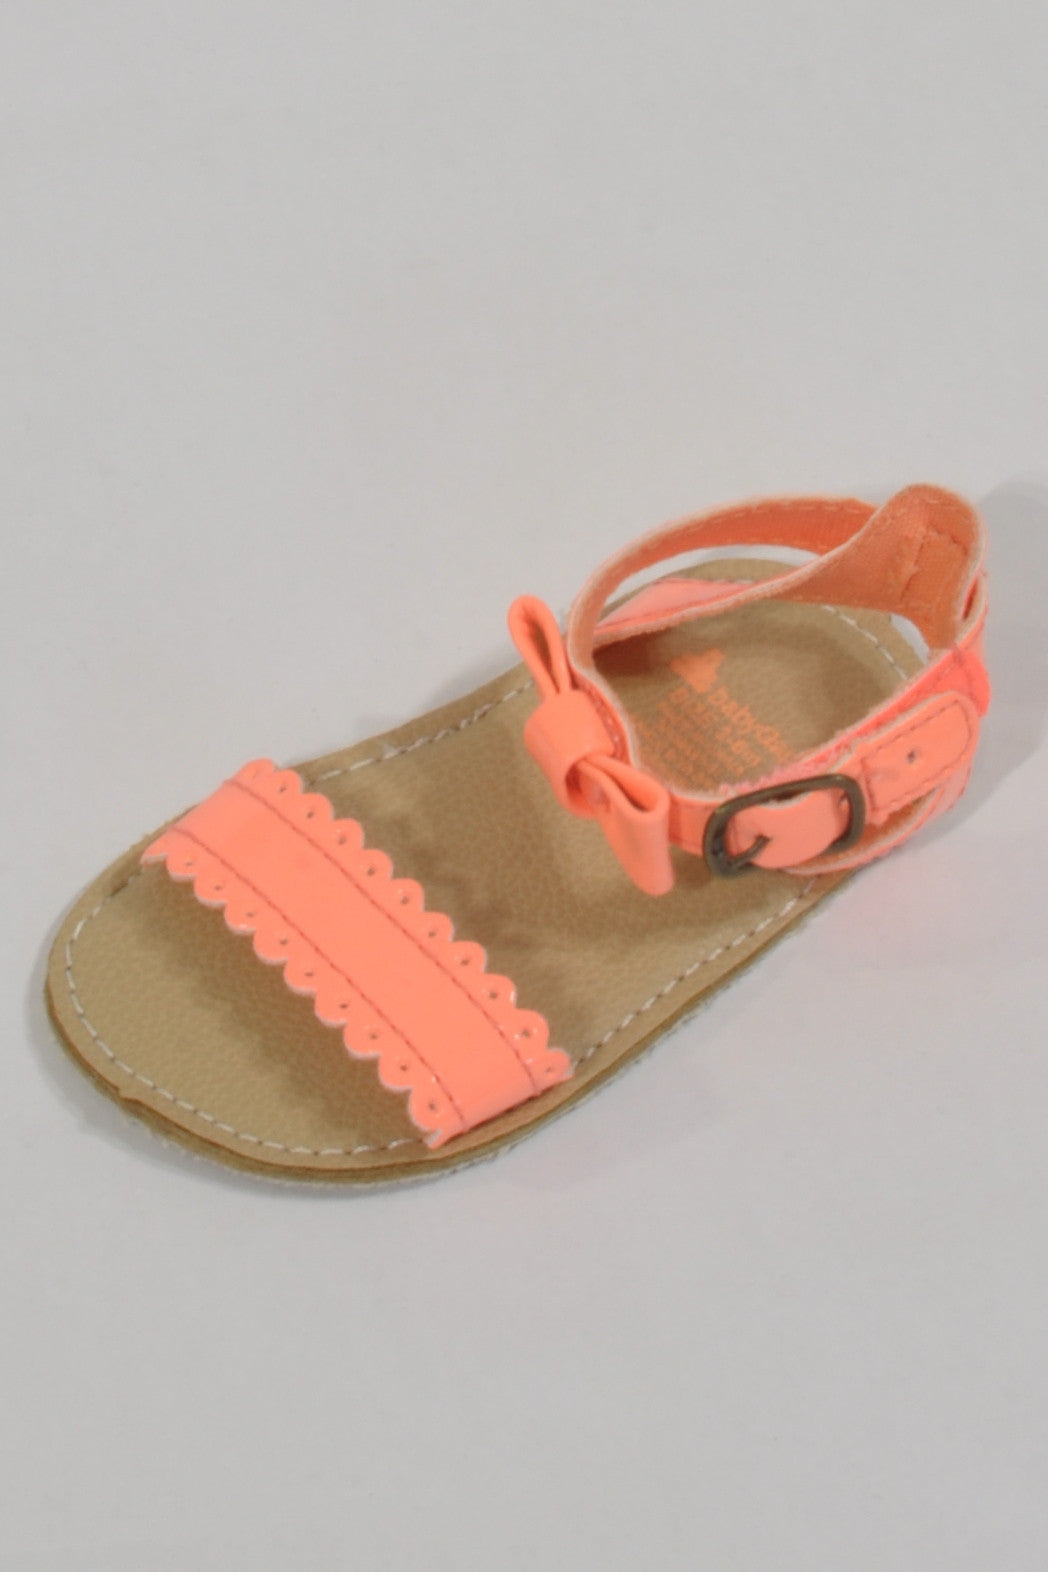 Gap Bright Orange  Sandals Girls 3-6 months